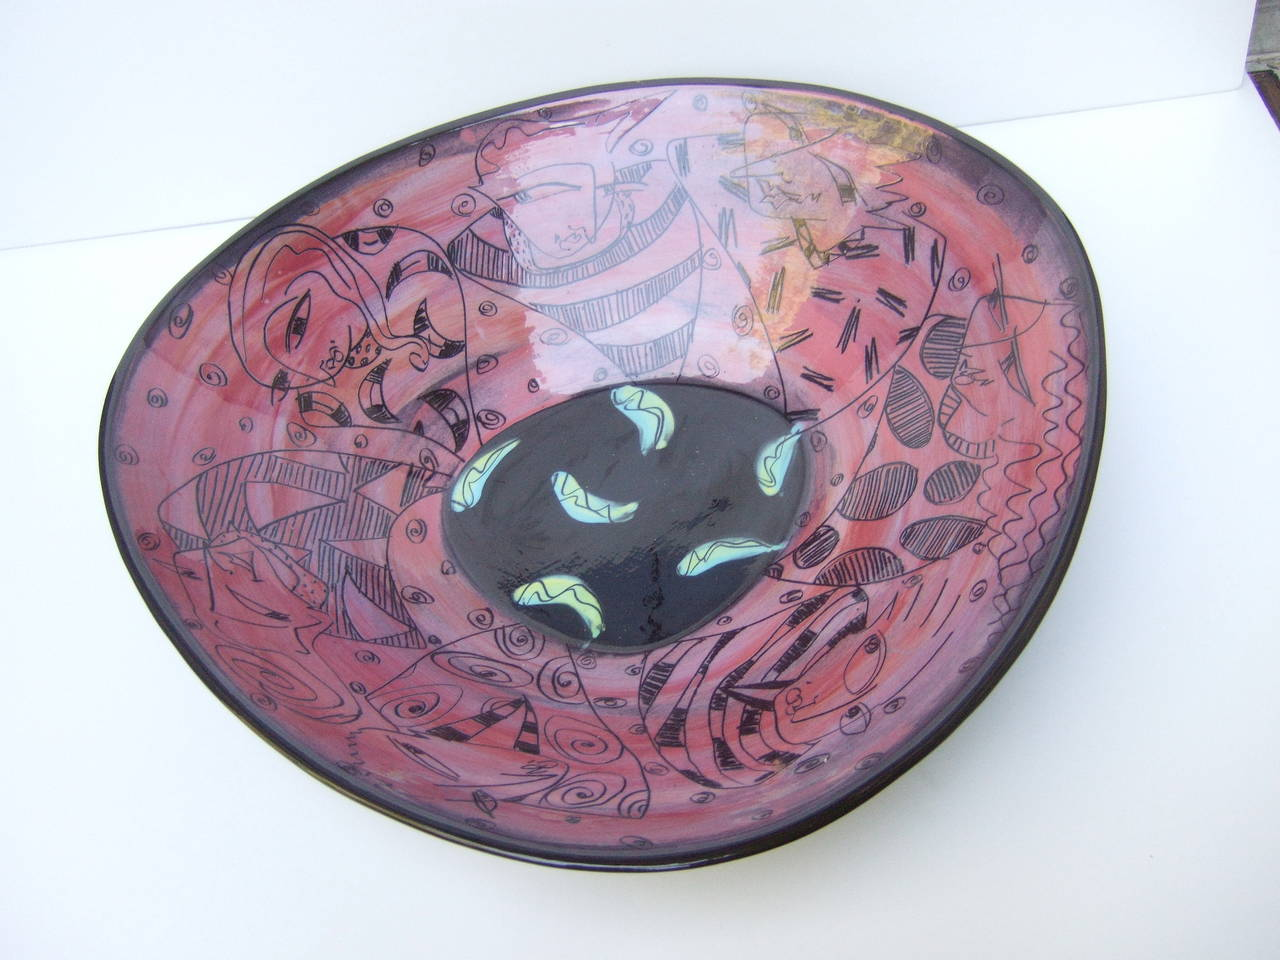 Artisan Ceramic Illustrated Bowl Designed by Odell  c 1995 For Sale 2